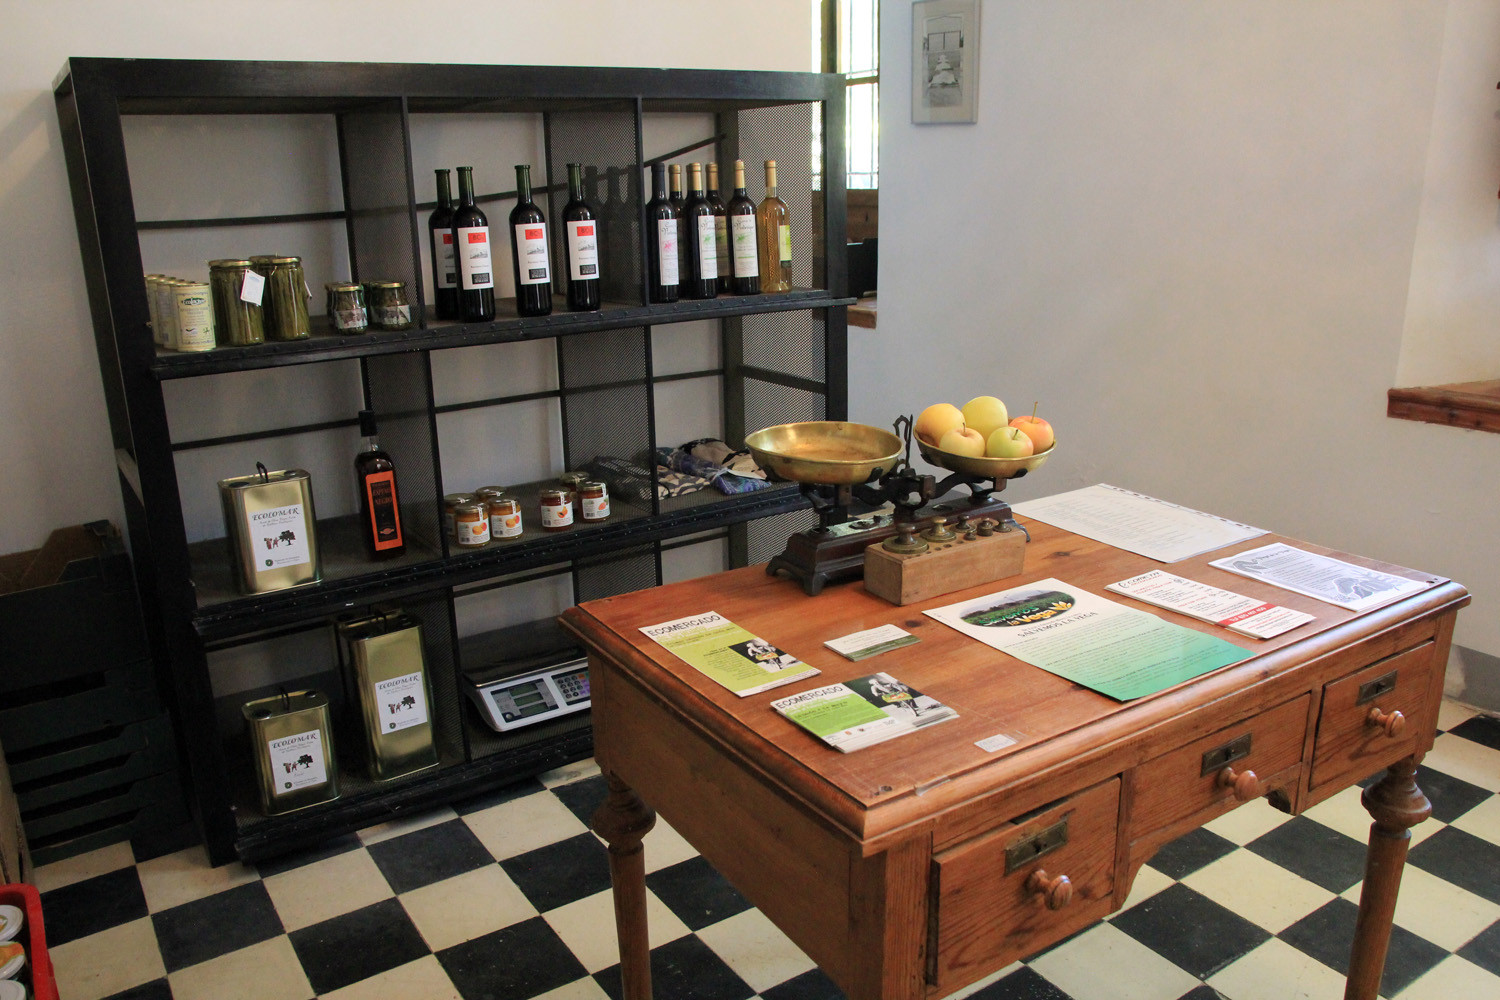 The ecologic shop with local products